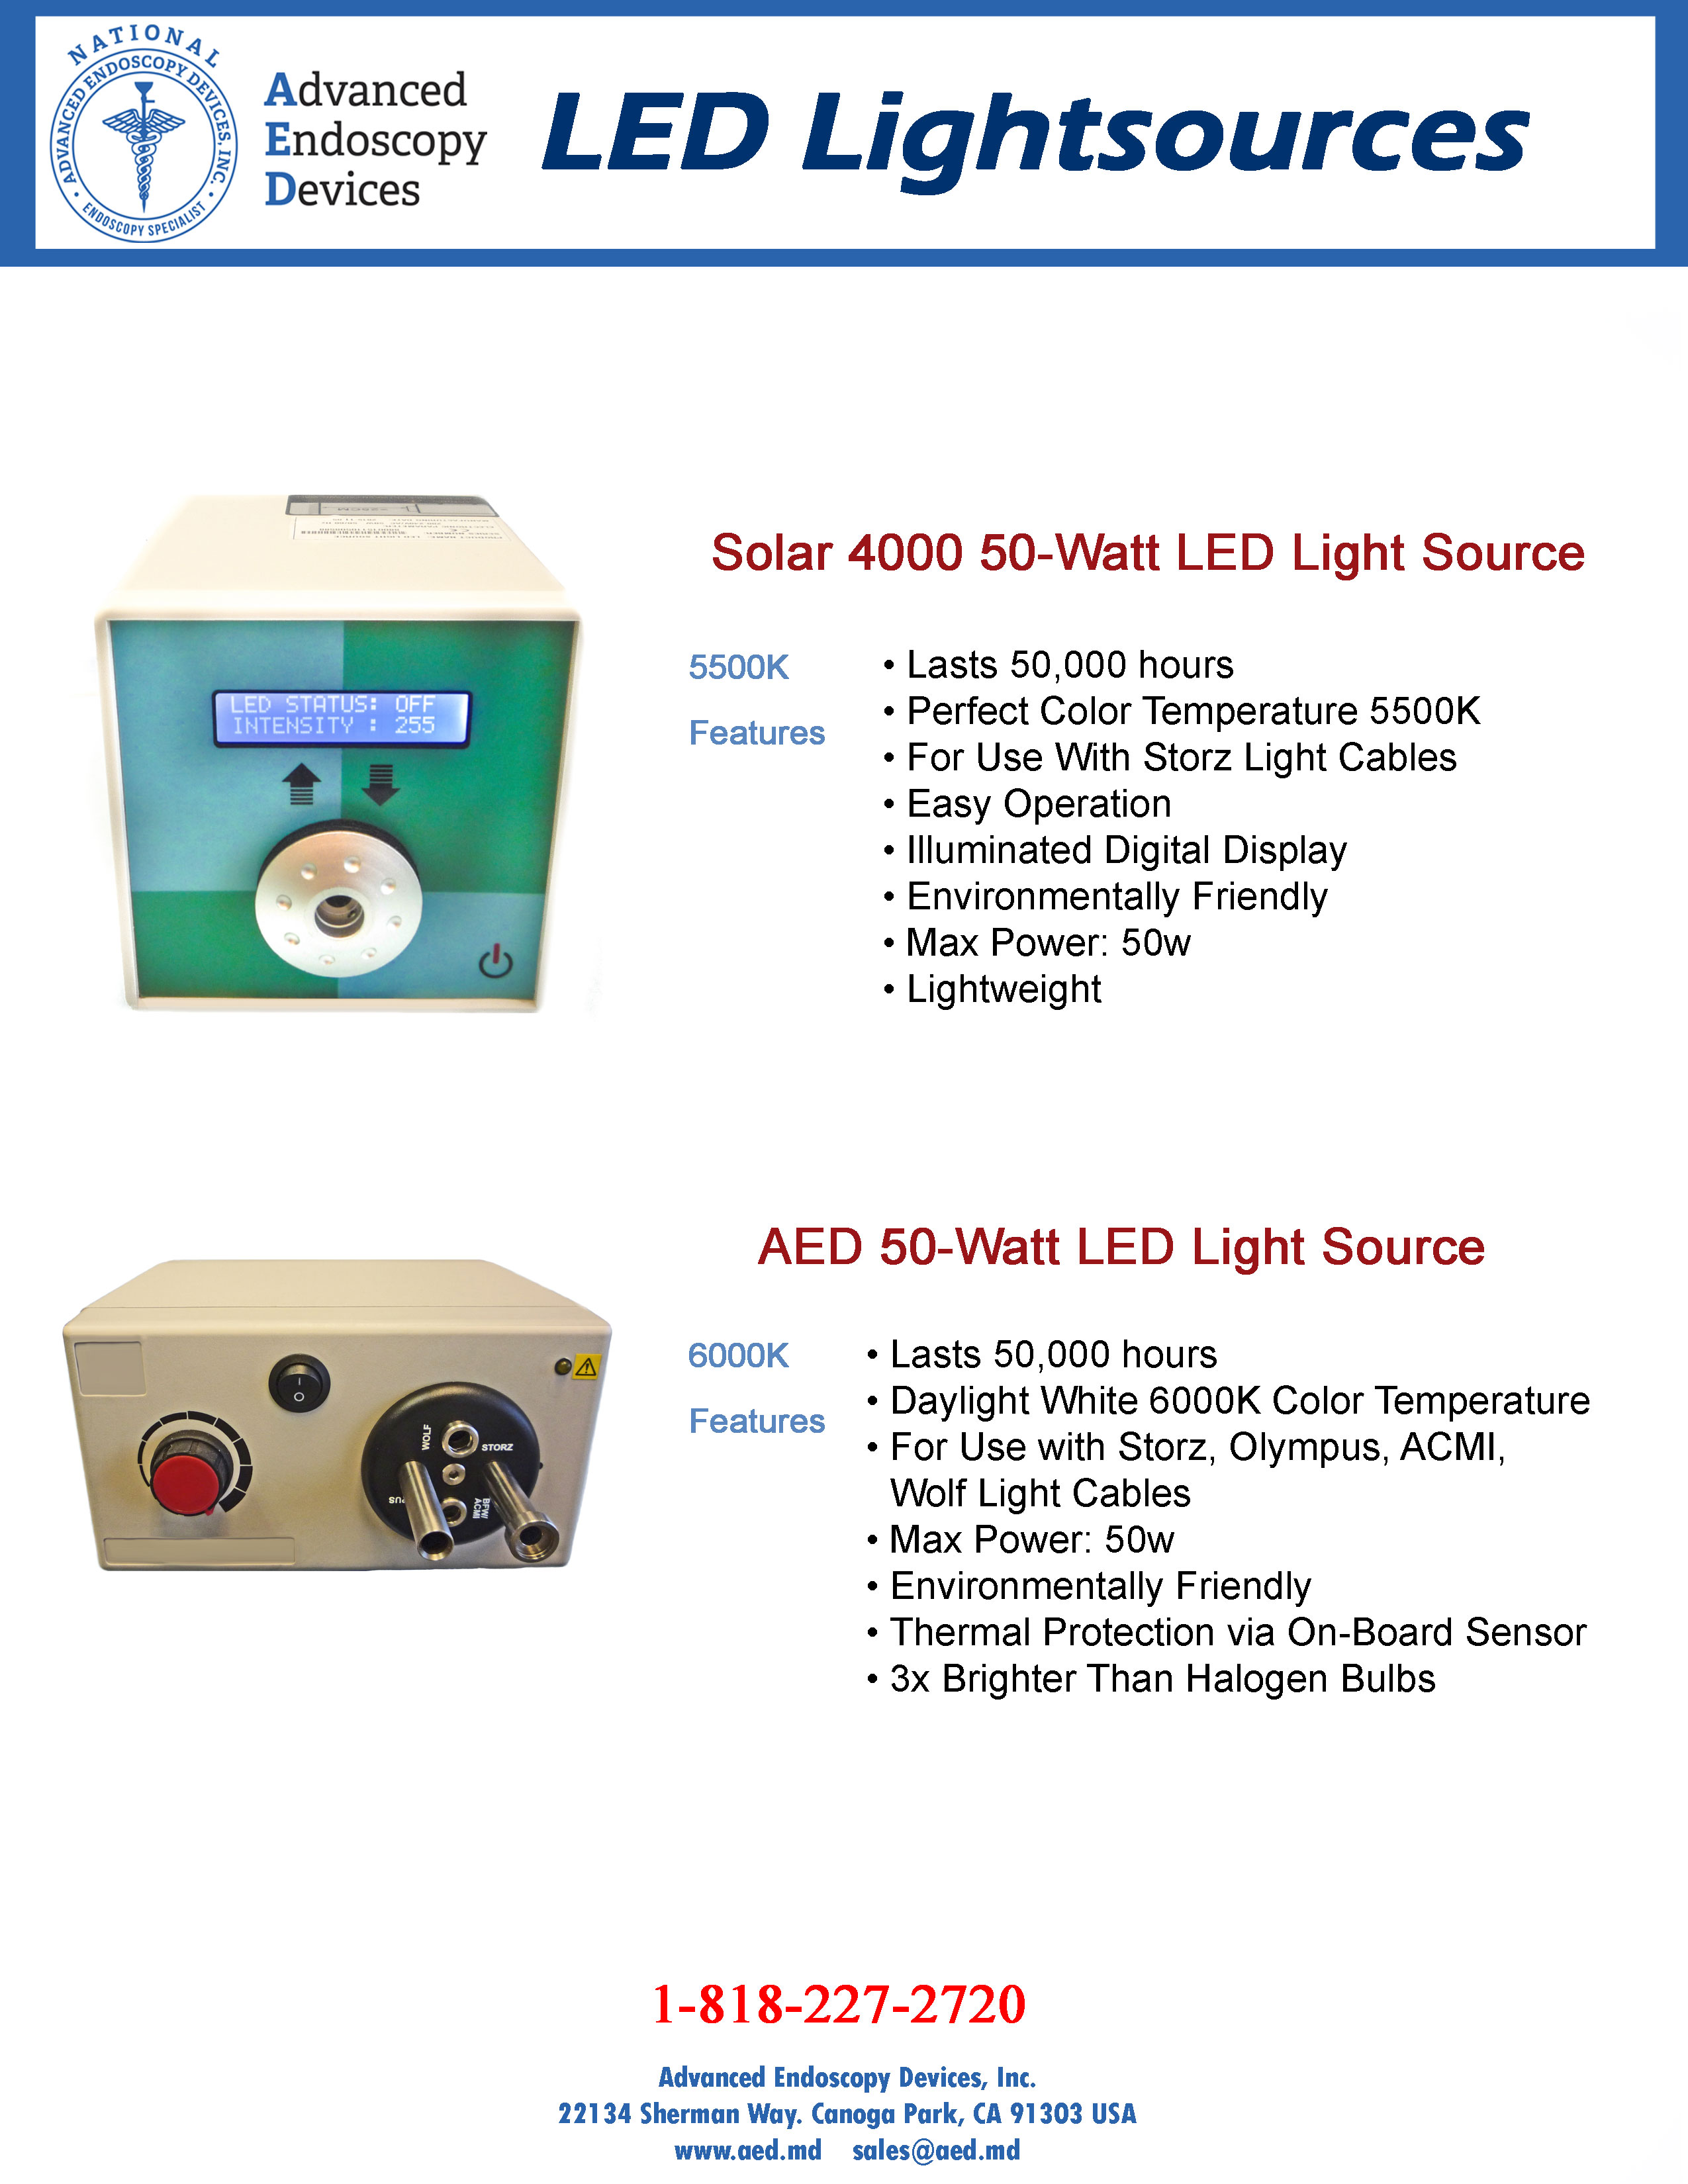 LED Lightsources Product Page